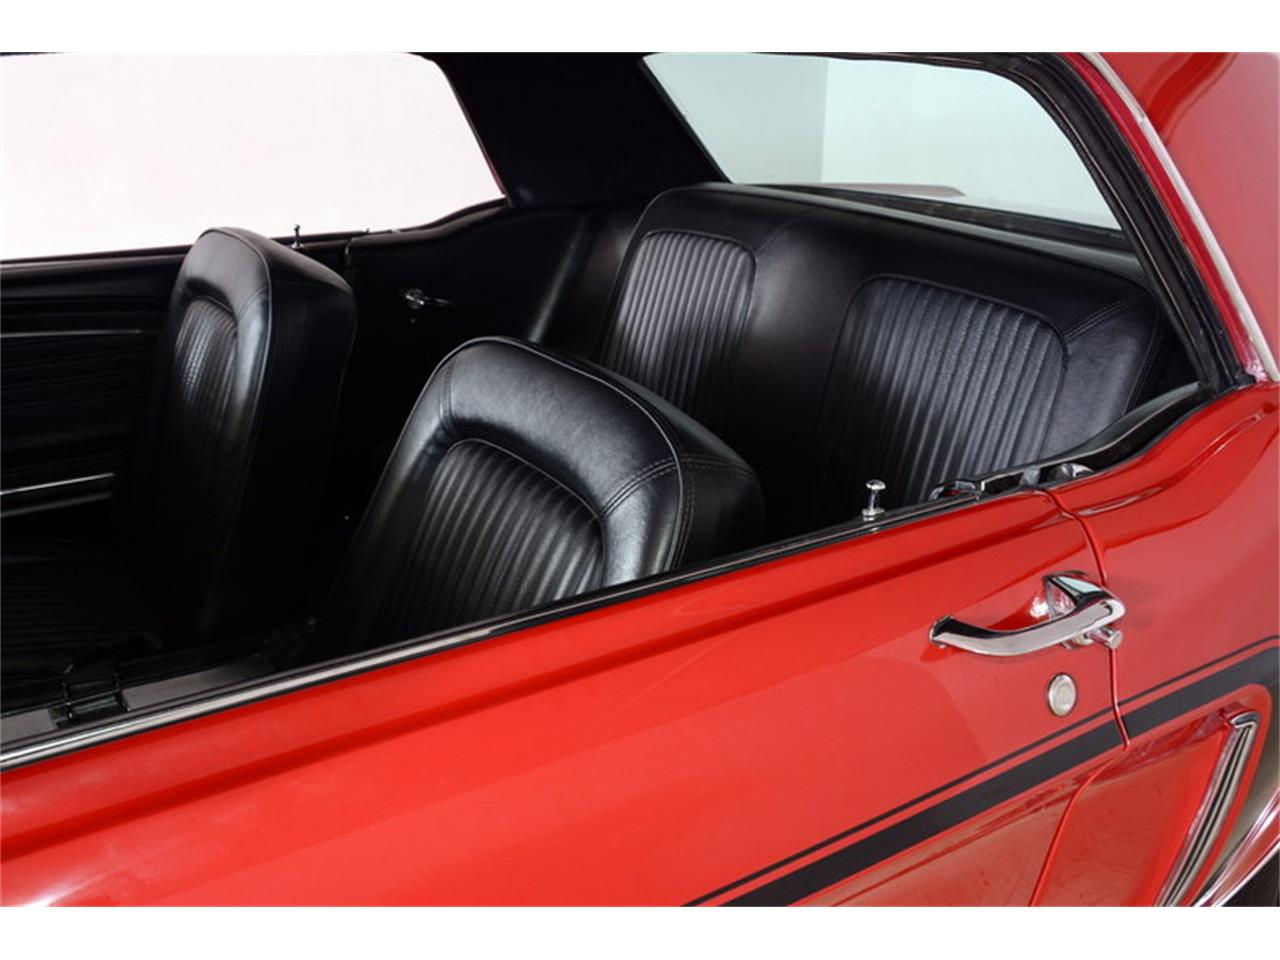 Large Picture of '68 Mustang GT - $34,998.00 - J0RT